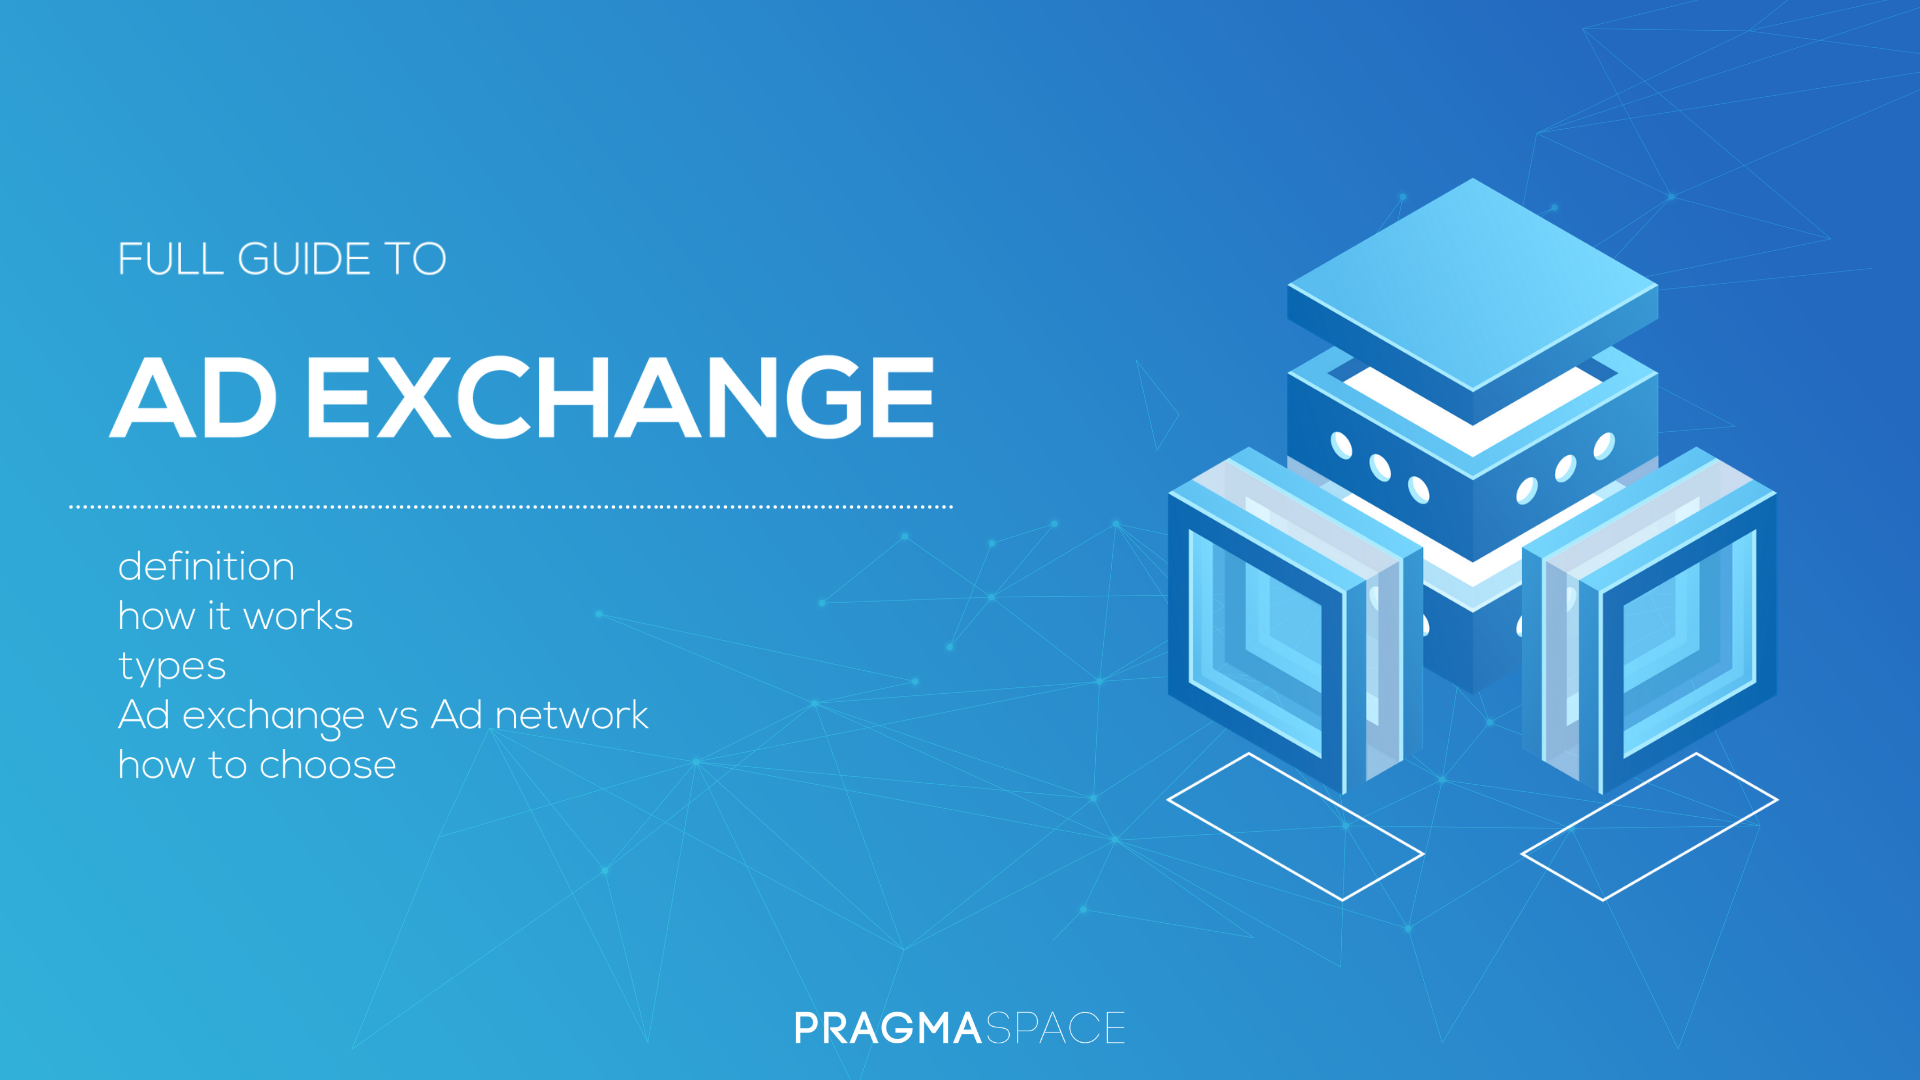 Full Ad Exchange Guide. What is Ad Exchange and how it works?